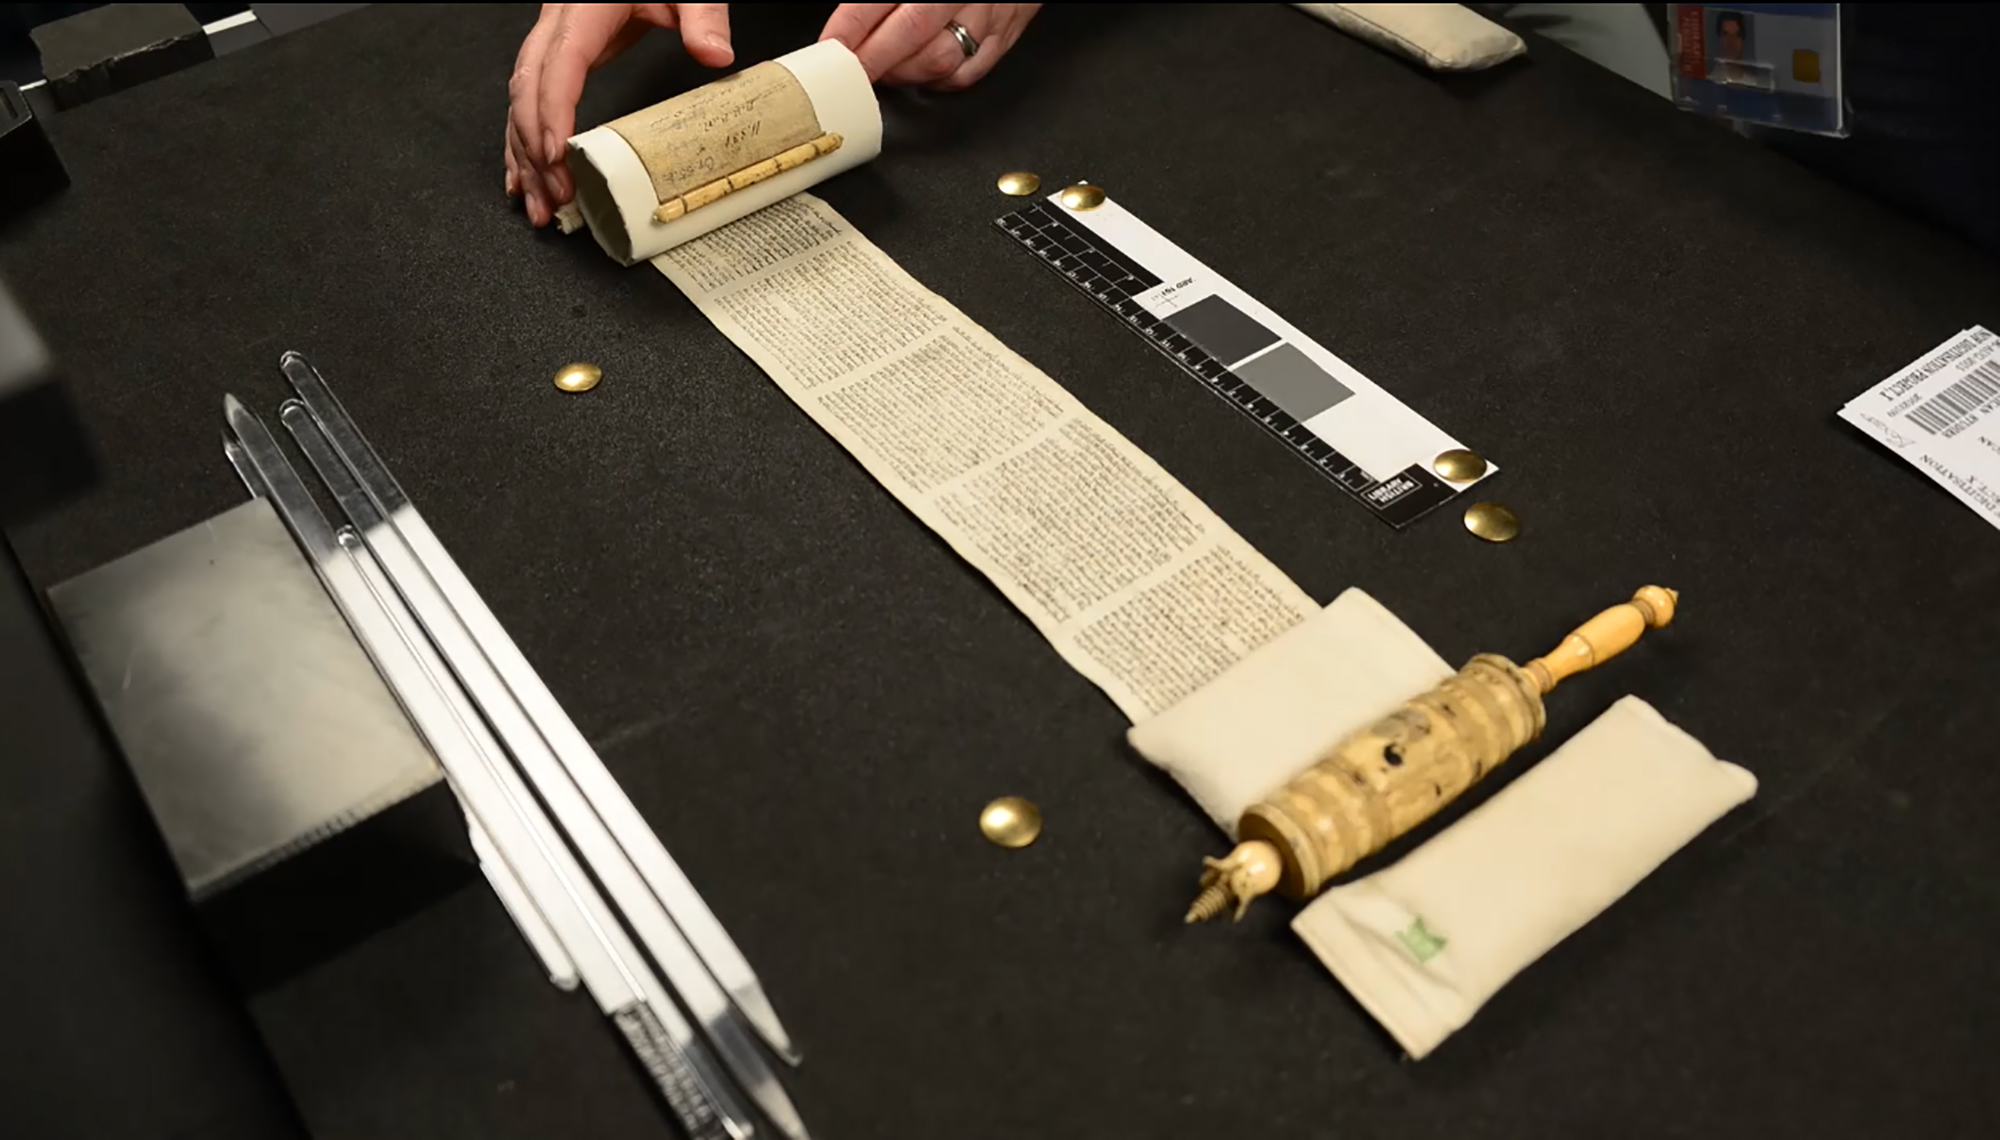 Watch this timelapse video showing the digitisation of a 17th-century Scroll of Esther by the British Library's Imaging Studio. This digitisation is part of the Hebrew Manuscripts Digitisation Project, funded by The Polonsky Foundation, to digitise over 1,250 manuscripts from the British Library magnificent collection of Hebrew manuscripts.